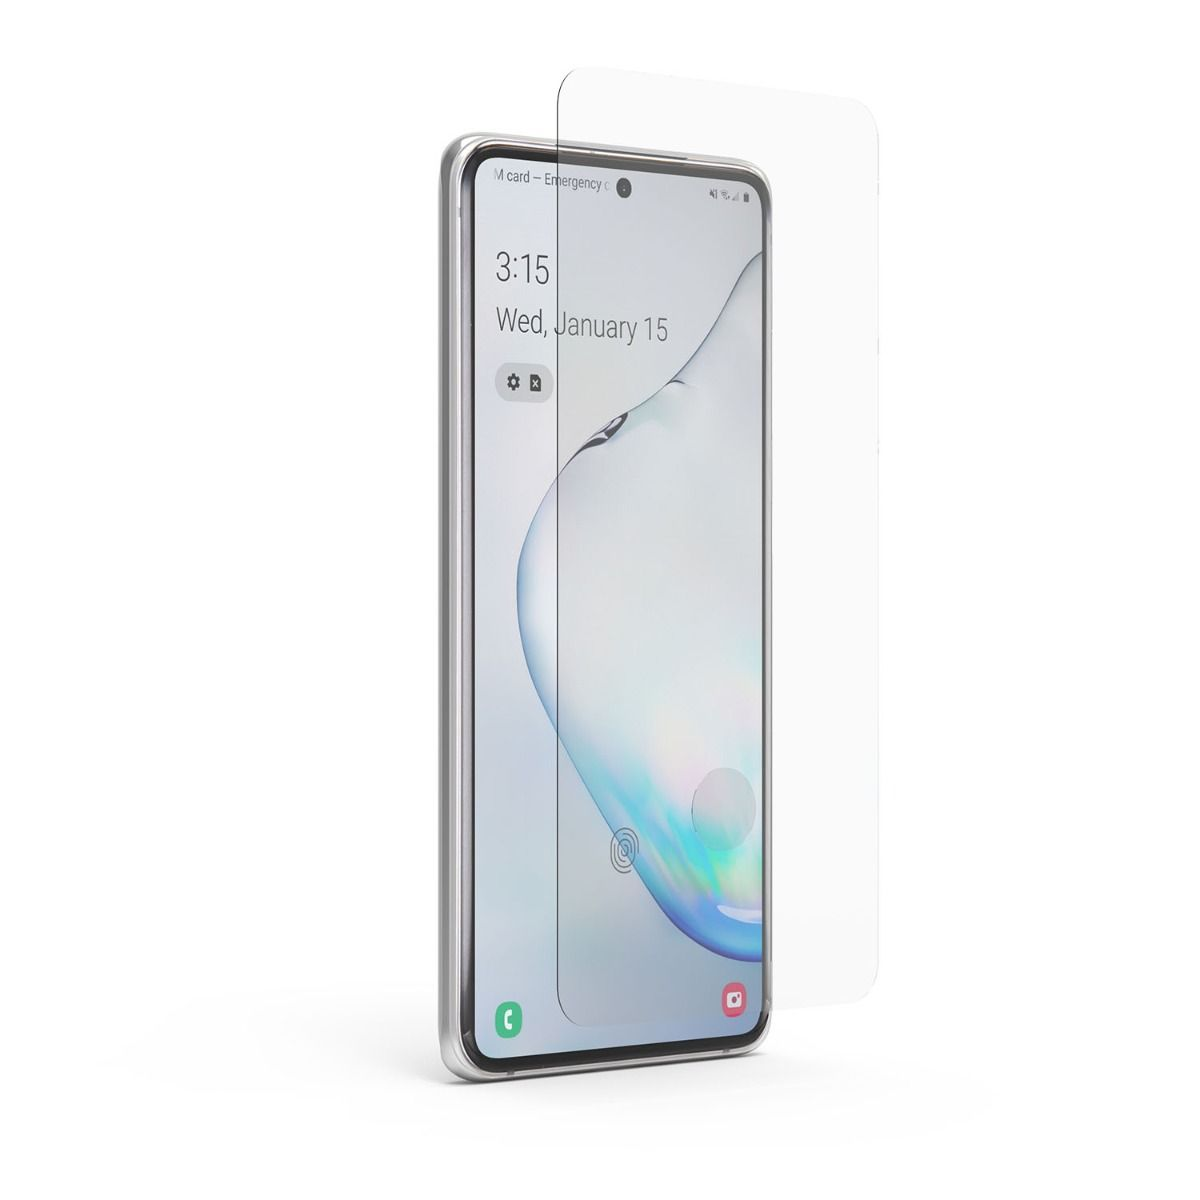 Samsung Galaxy S20+ Steel 360 Curved Glass Fingerprint Sensor Ready Screen Protector with Alignment Tray and Pure Pledge up to $100